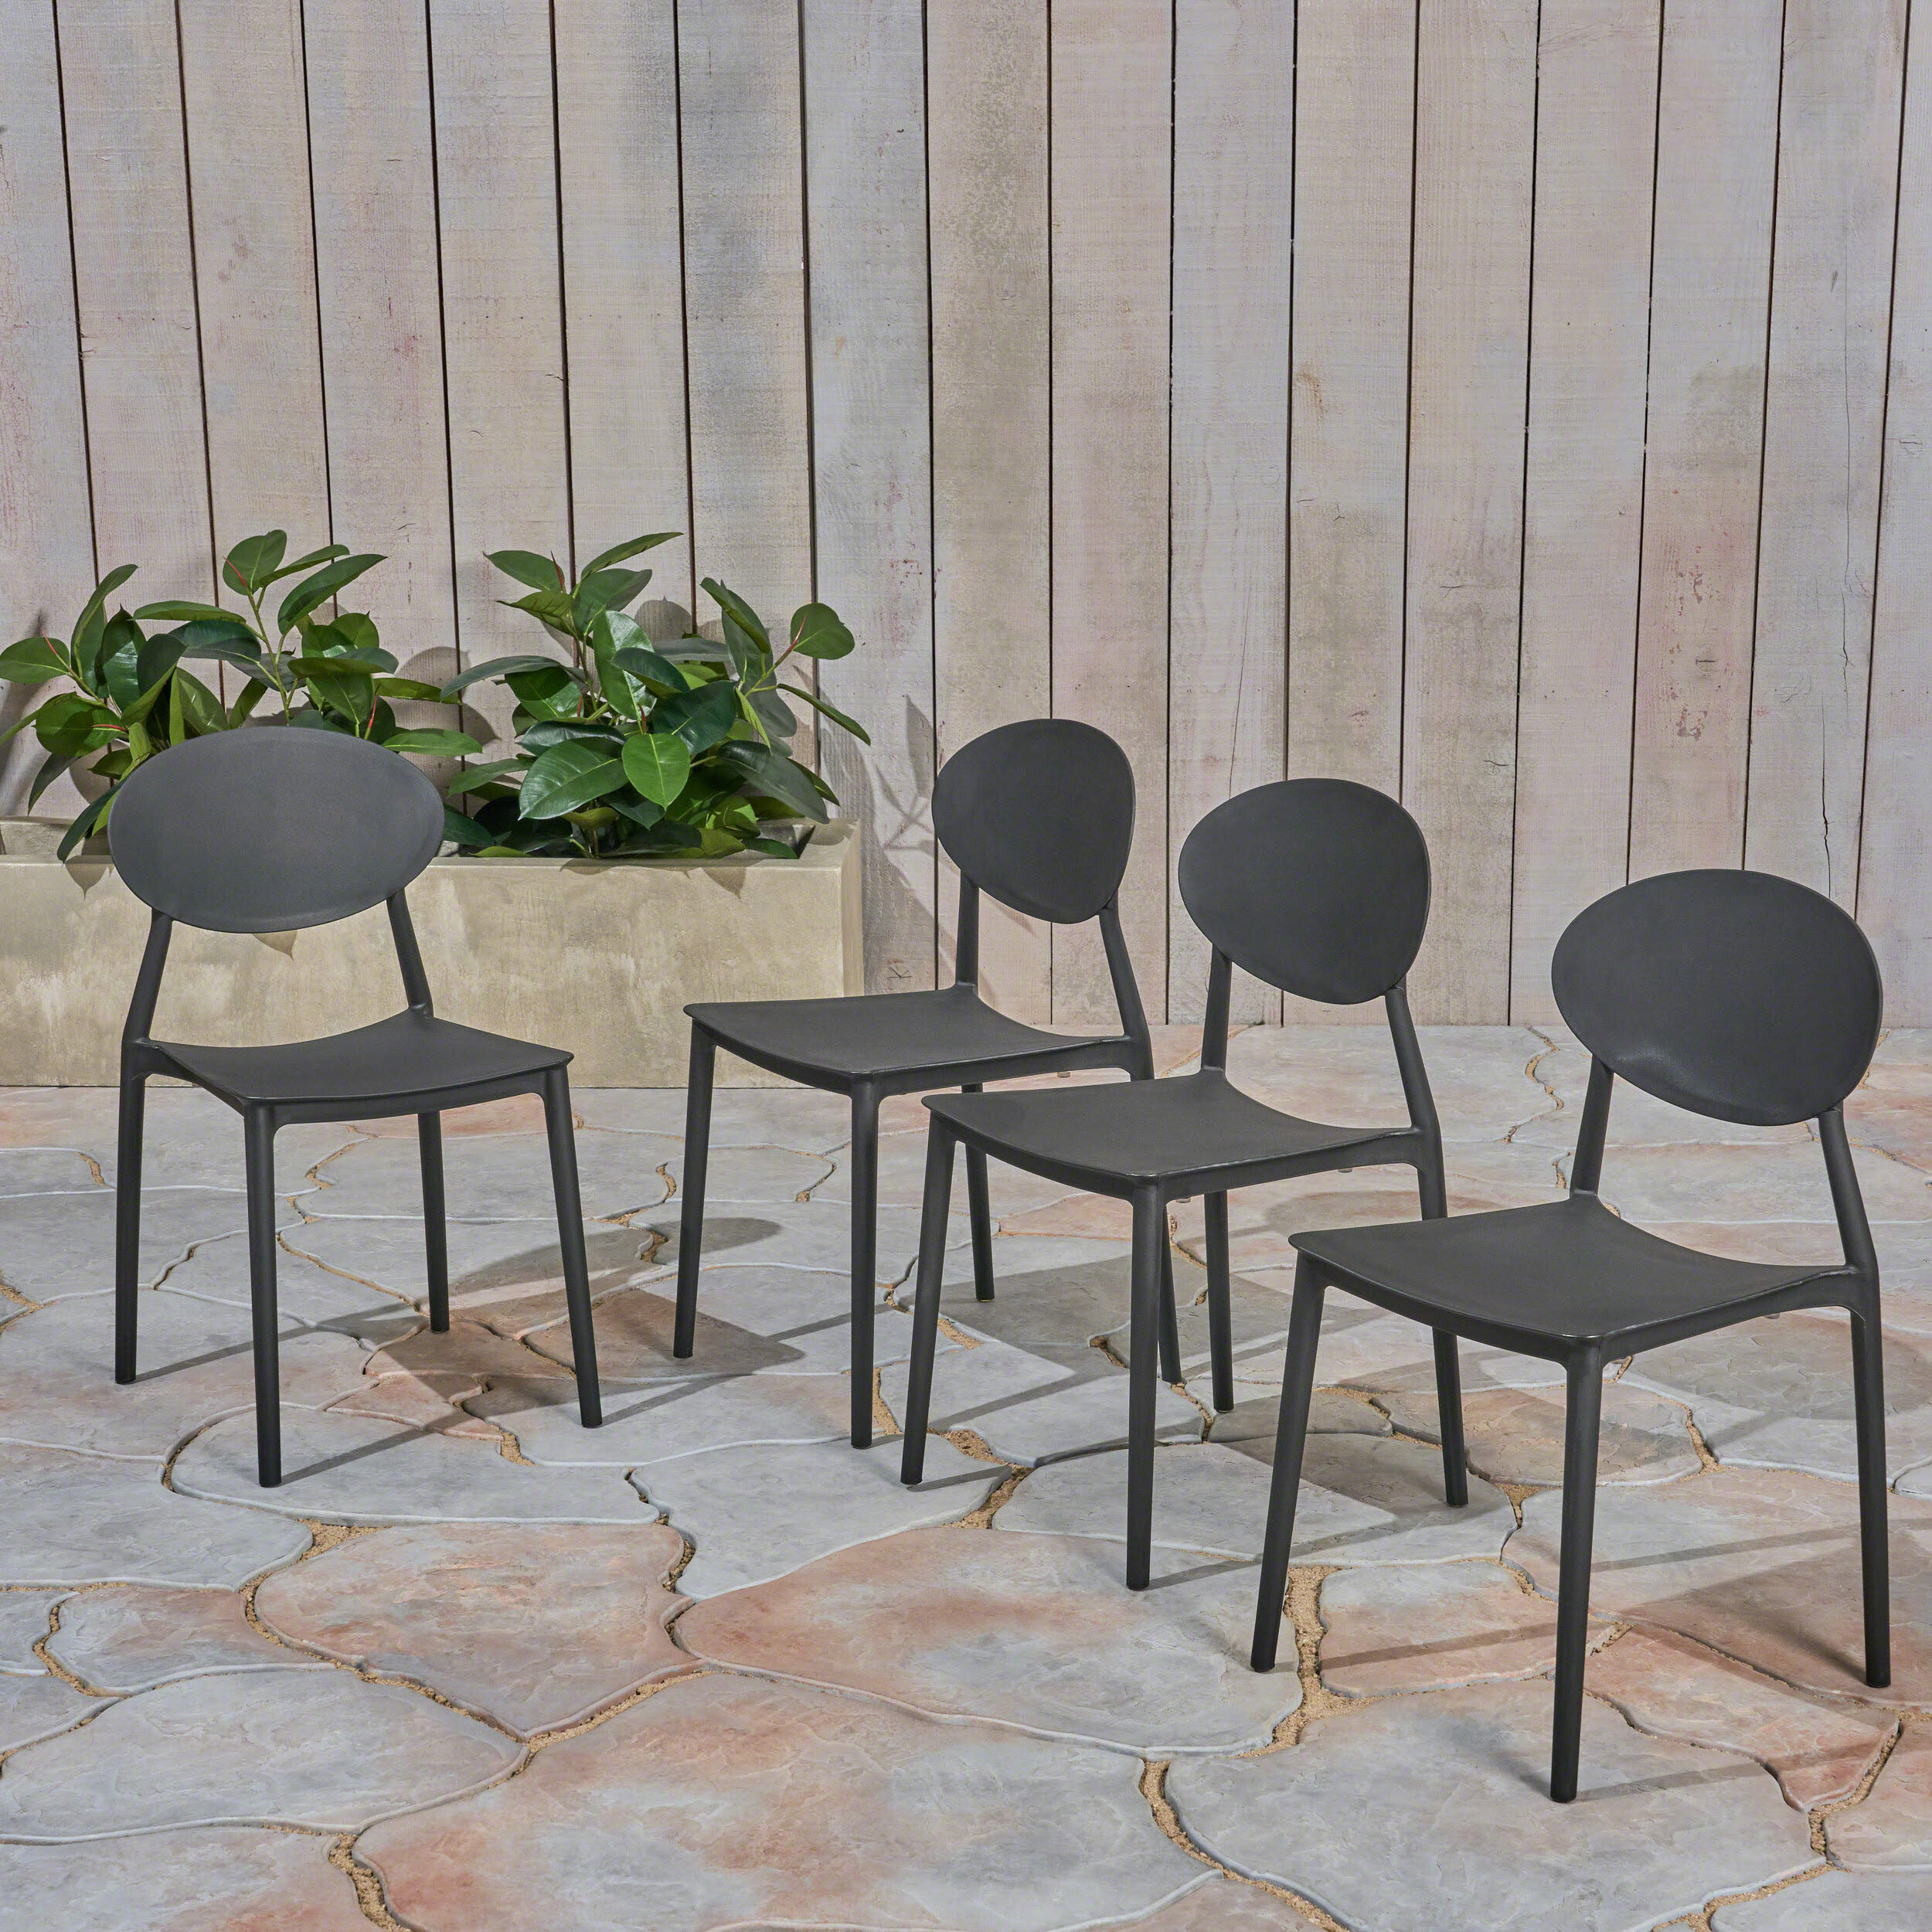 Ebern Designs Belford Stacking Patio Dining Chair Reviews Wayfair